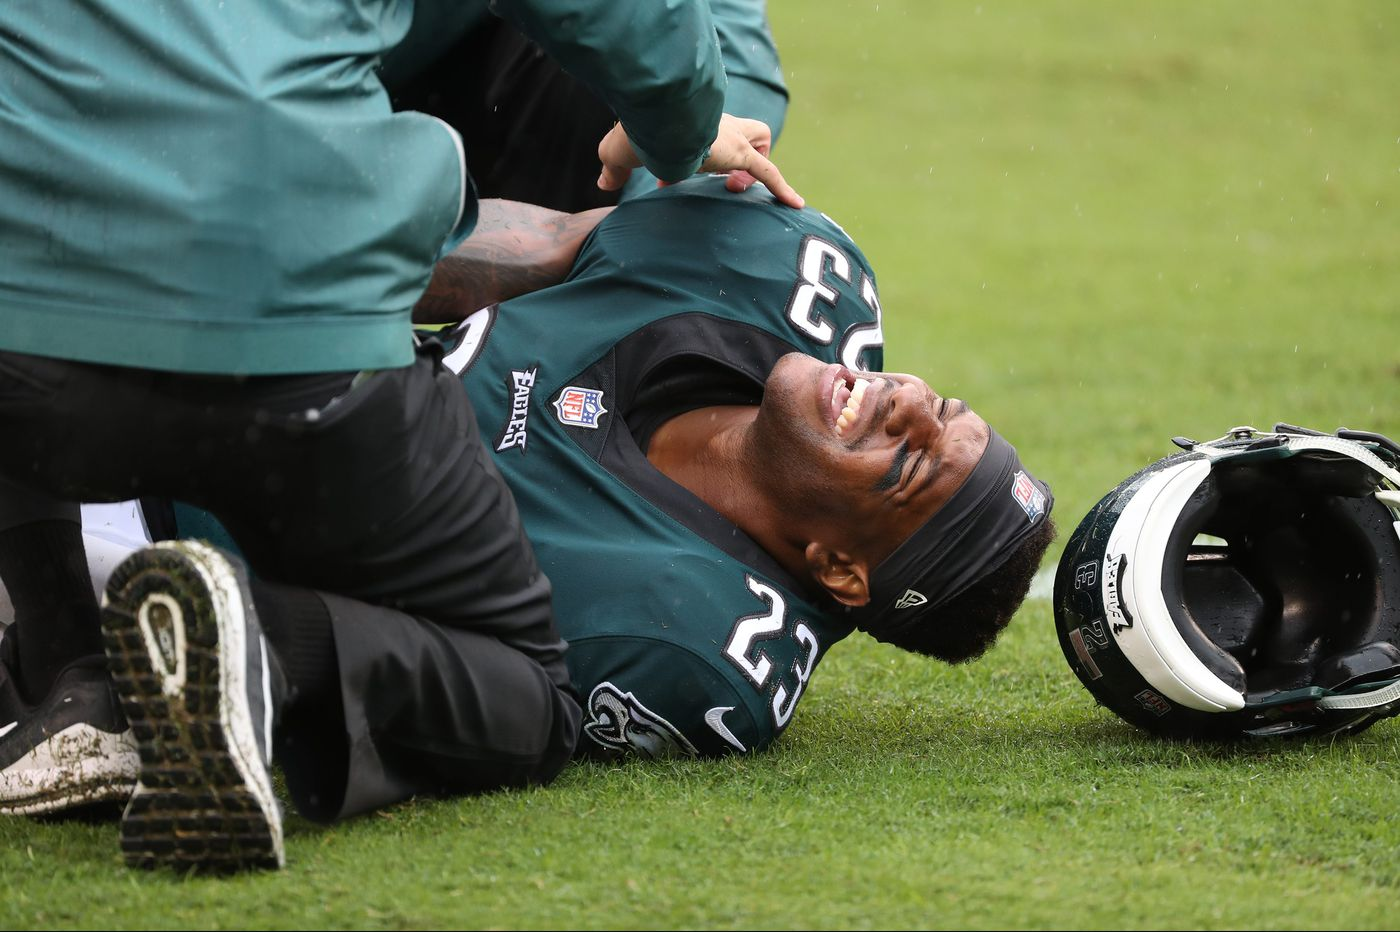 Rodney McLeod felt good after Eagles' win, pending tests; Dallas Goedert has his best game so far